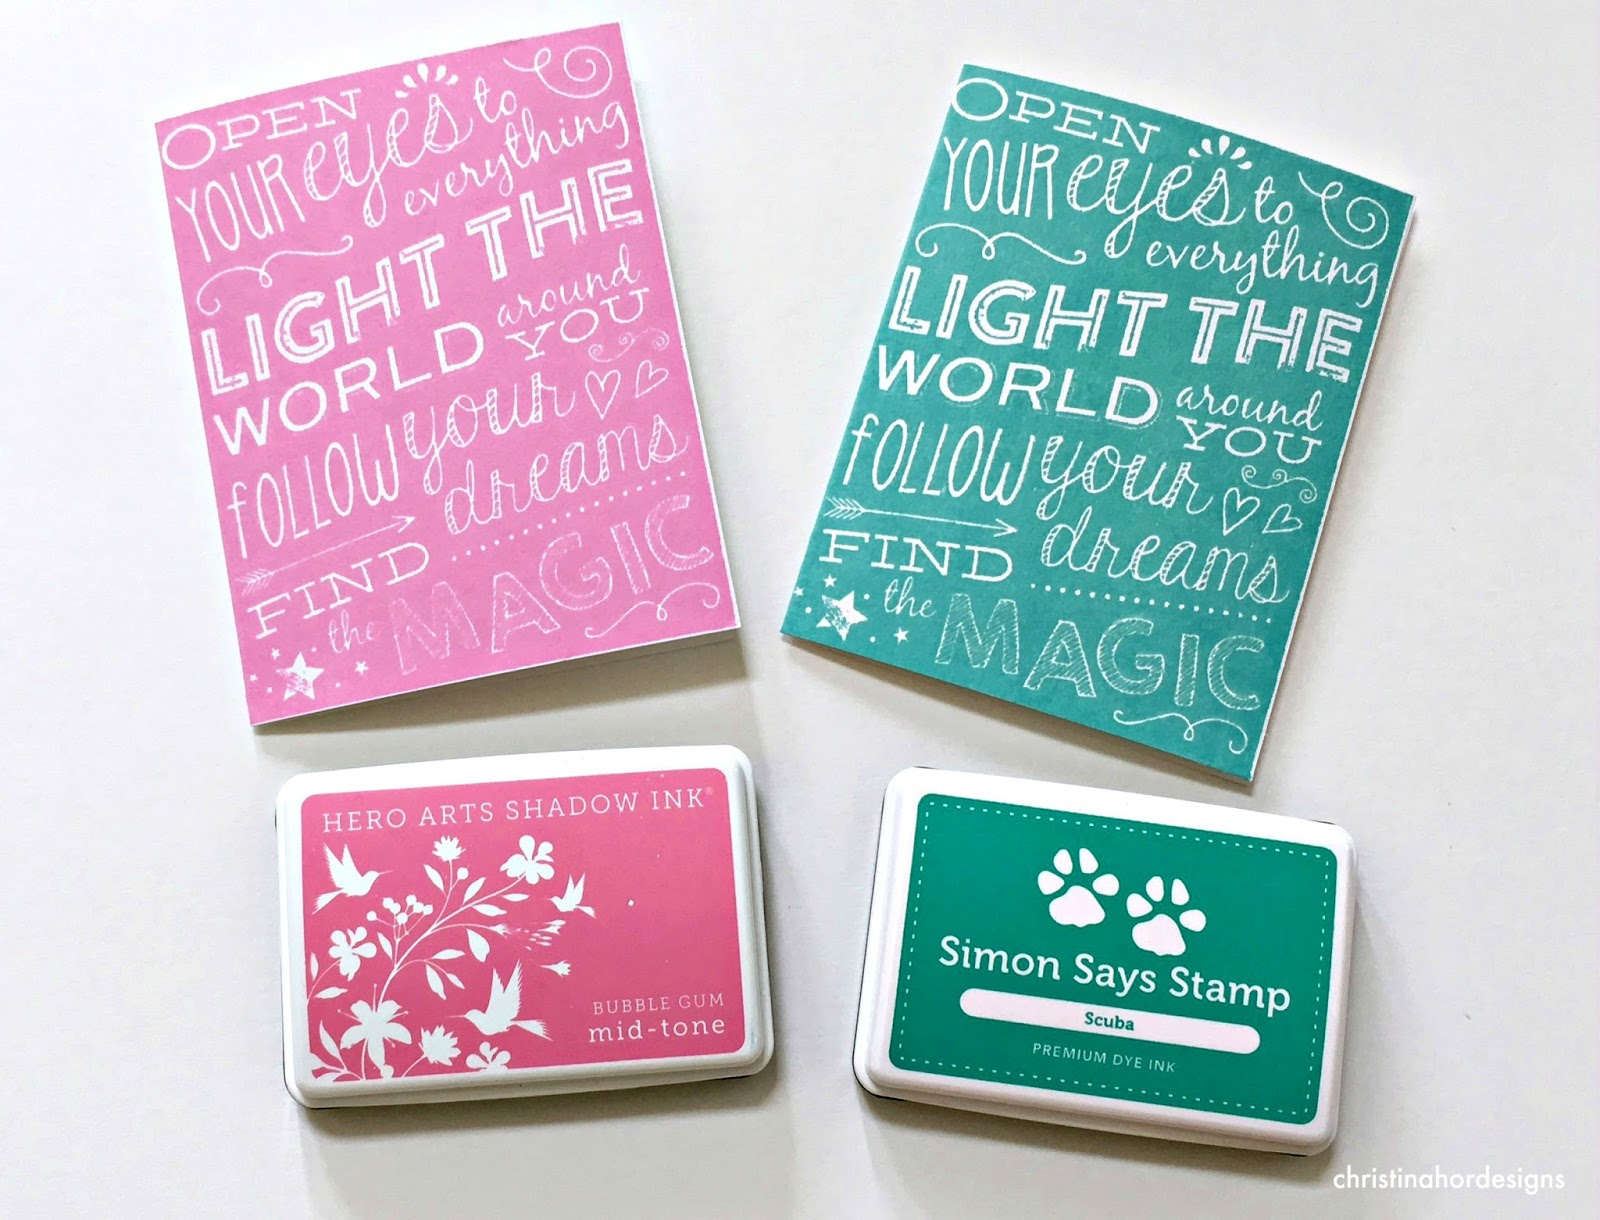 Simon Says Stamp Premium Ink Pads